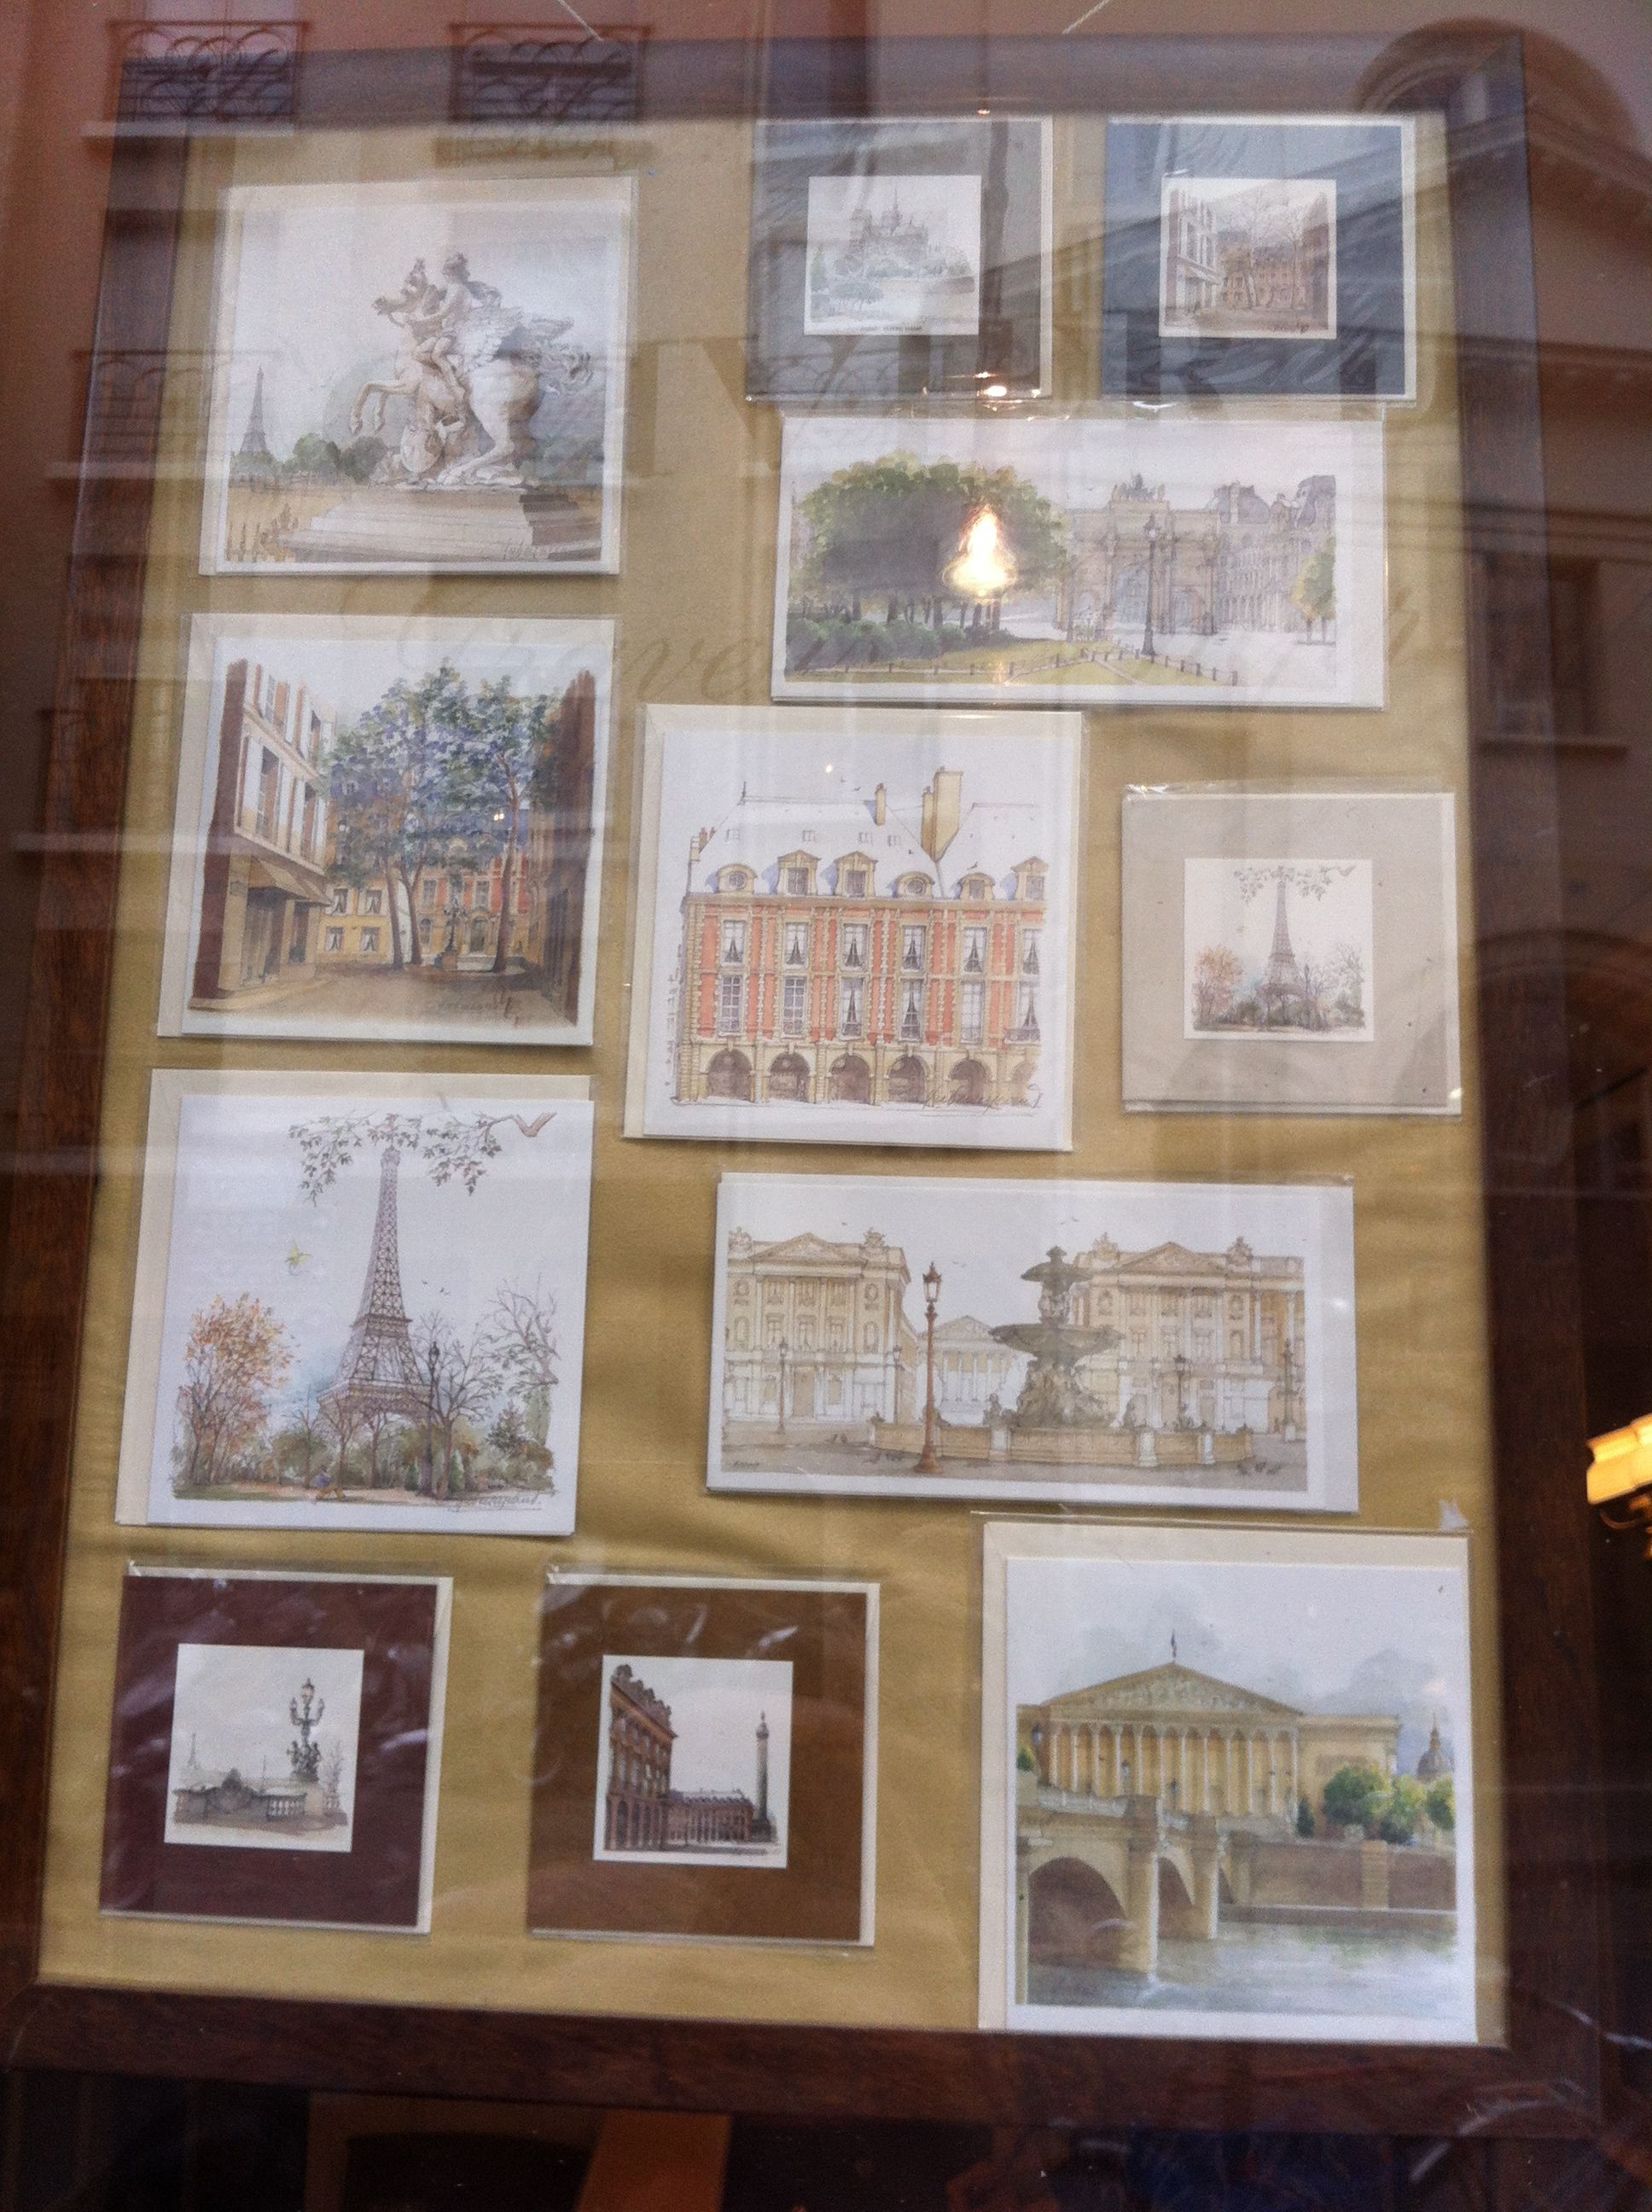 Amazing Personalised Stamp And Stationery Shop In Paris